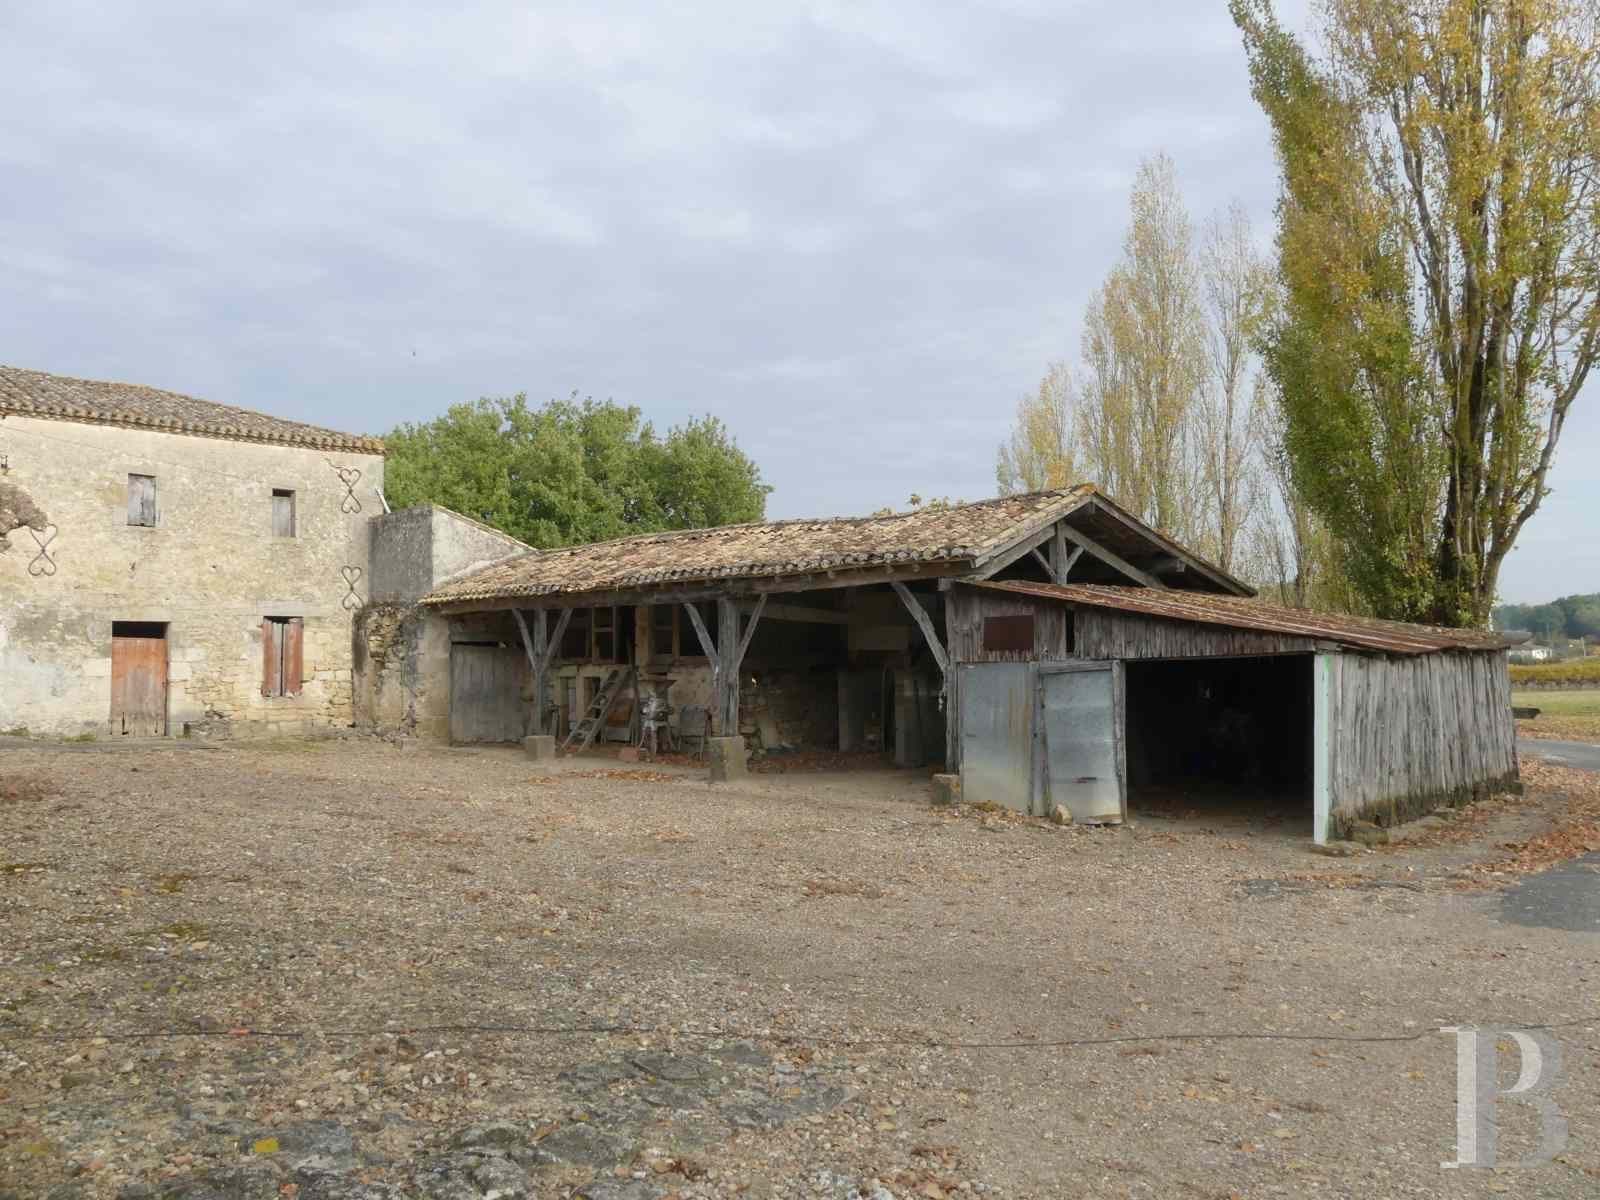 ruins for sale France aquitaine bordeaux vineyard - 11 zoom